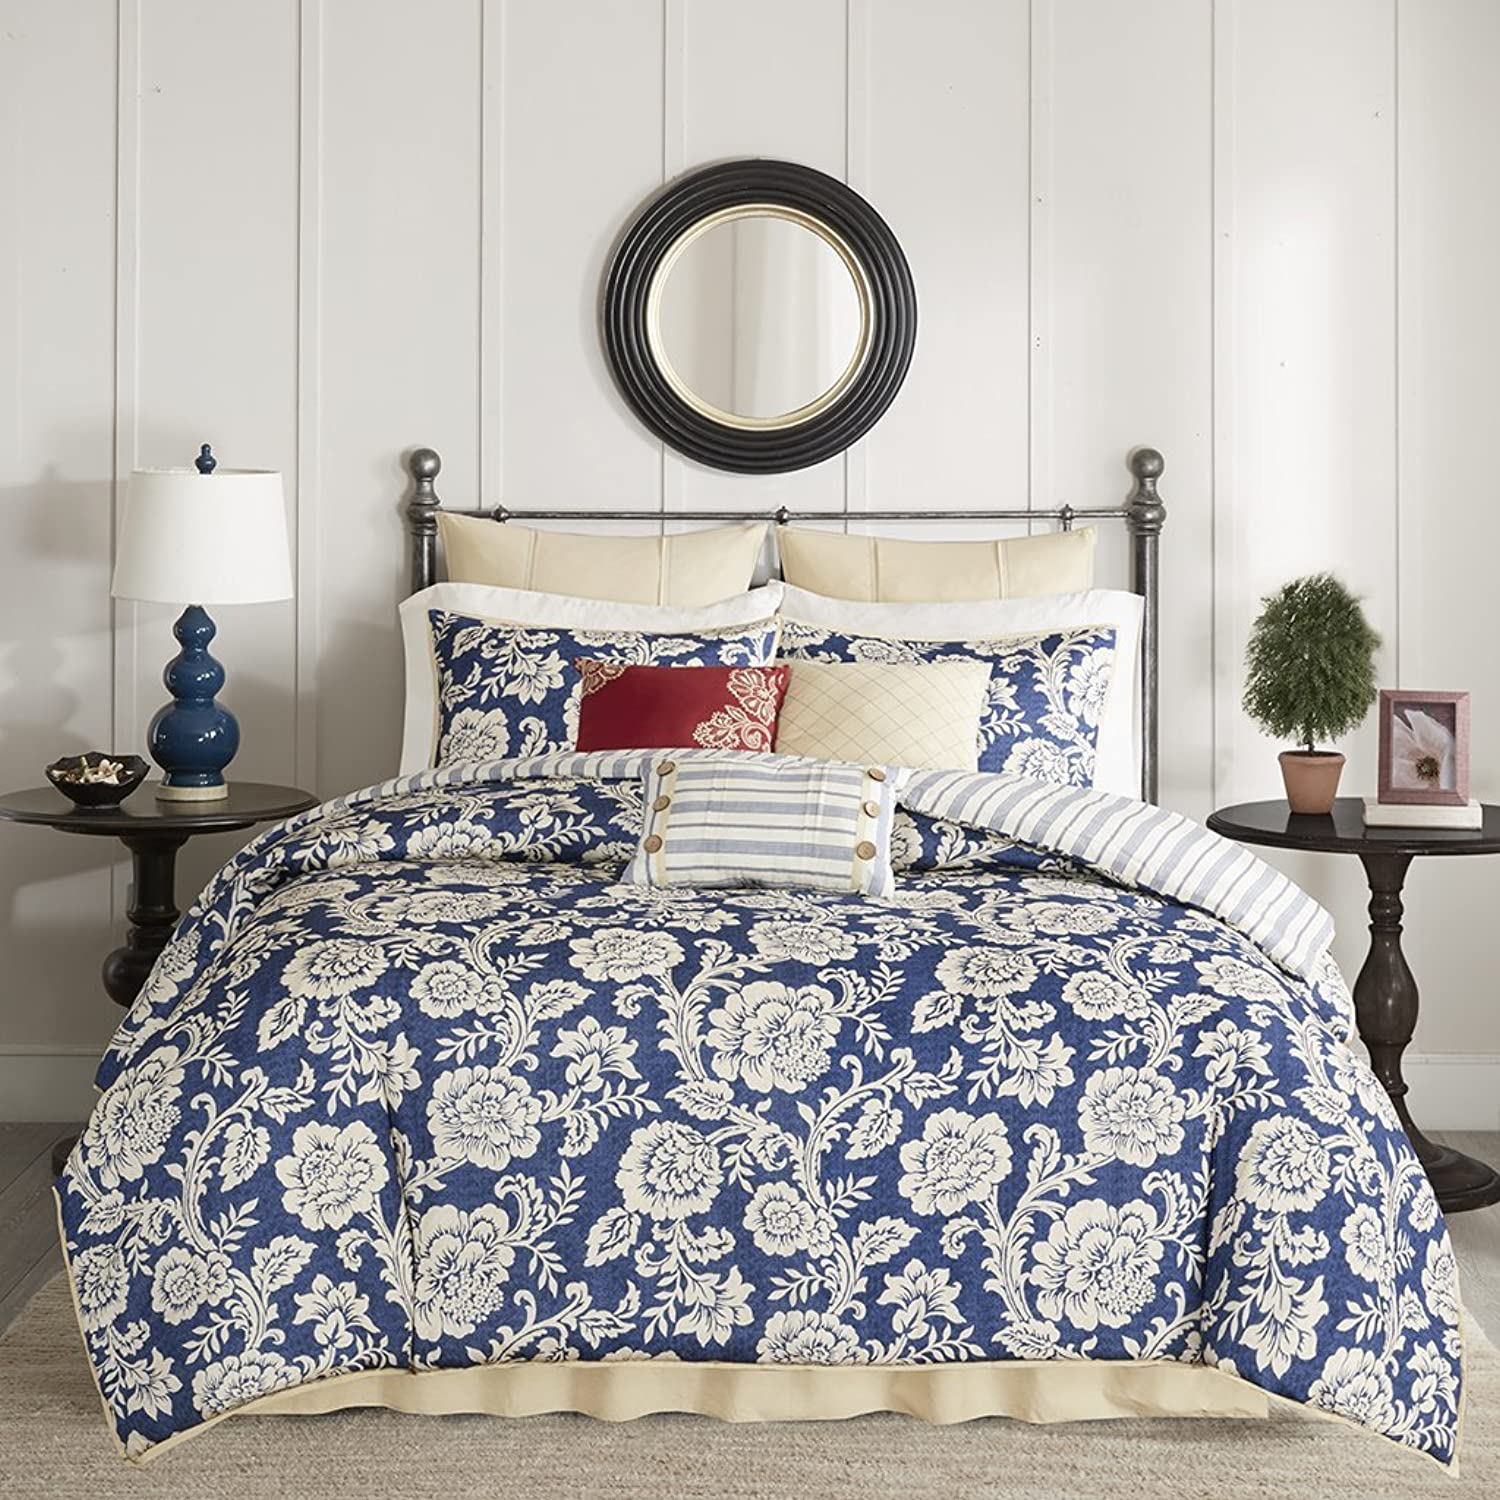 Madison Park Lucy Duvet Cover King Size - Navy, Ivory, Reversible Floral, Stripes Duvet Cover Set – 9 Piece – Cotton Twill, Cotton Poly Blend Reverse Light Weight Bed Comforter Covers